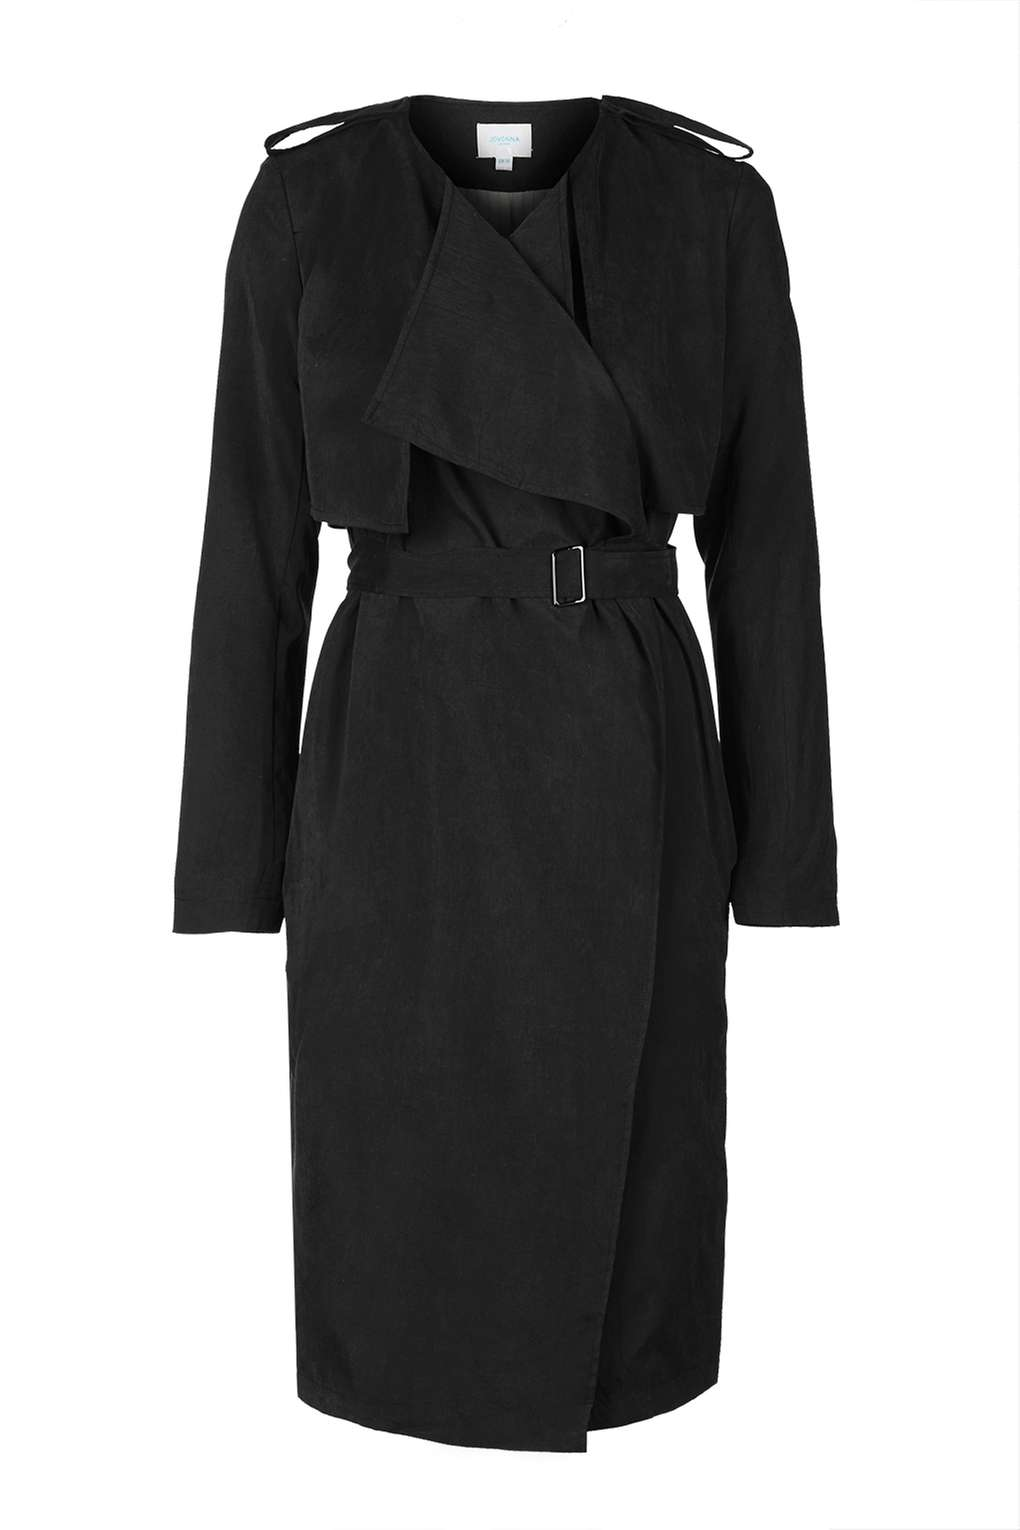 Midi Length Trench by Jovonna  Price: £75  Shop it   here